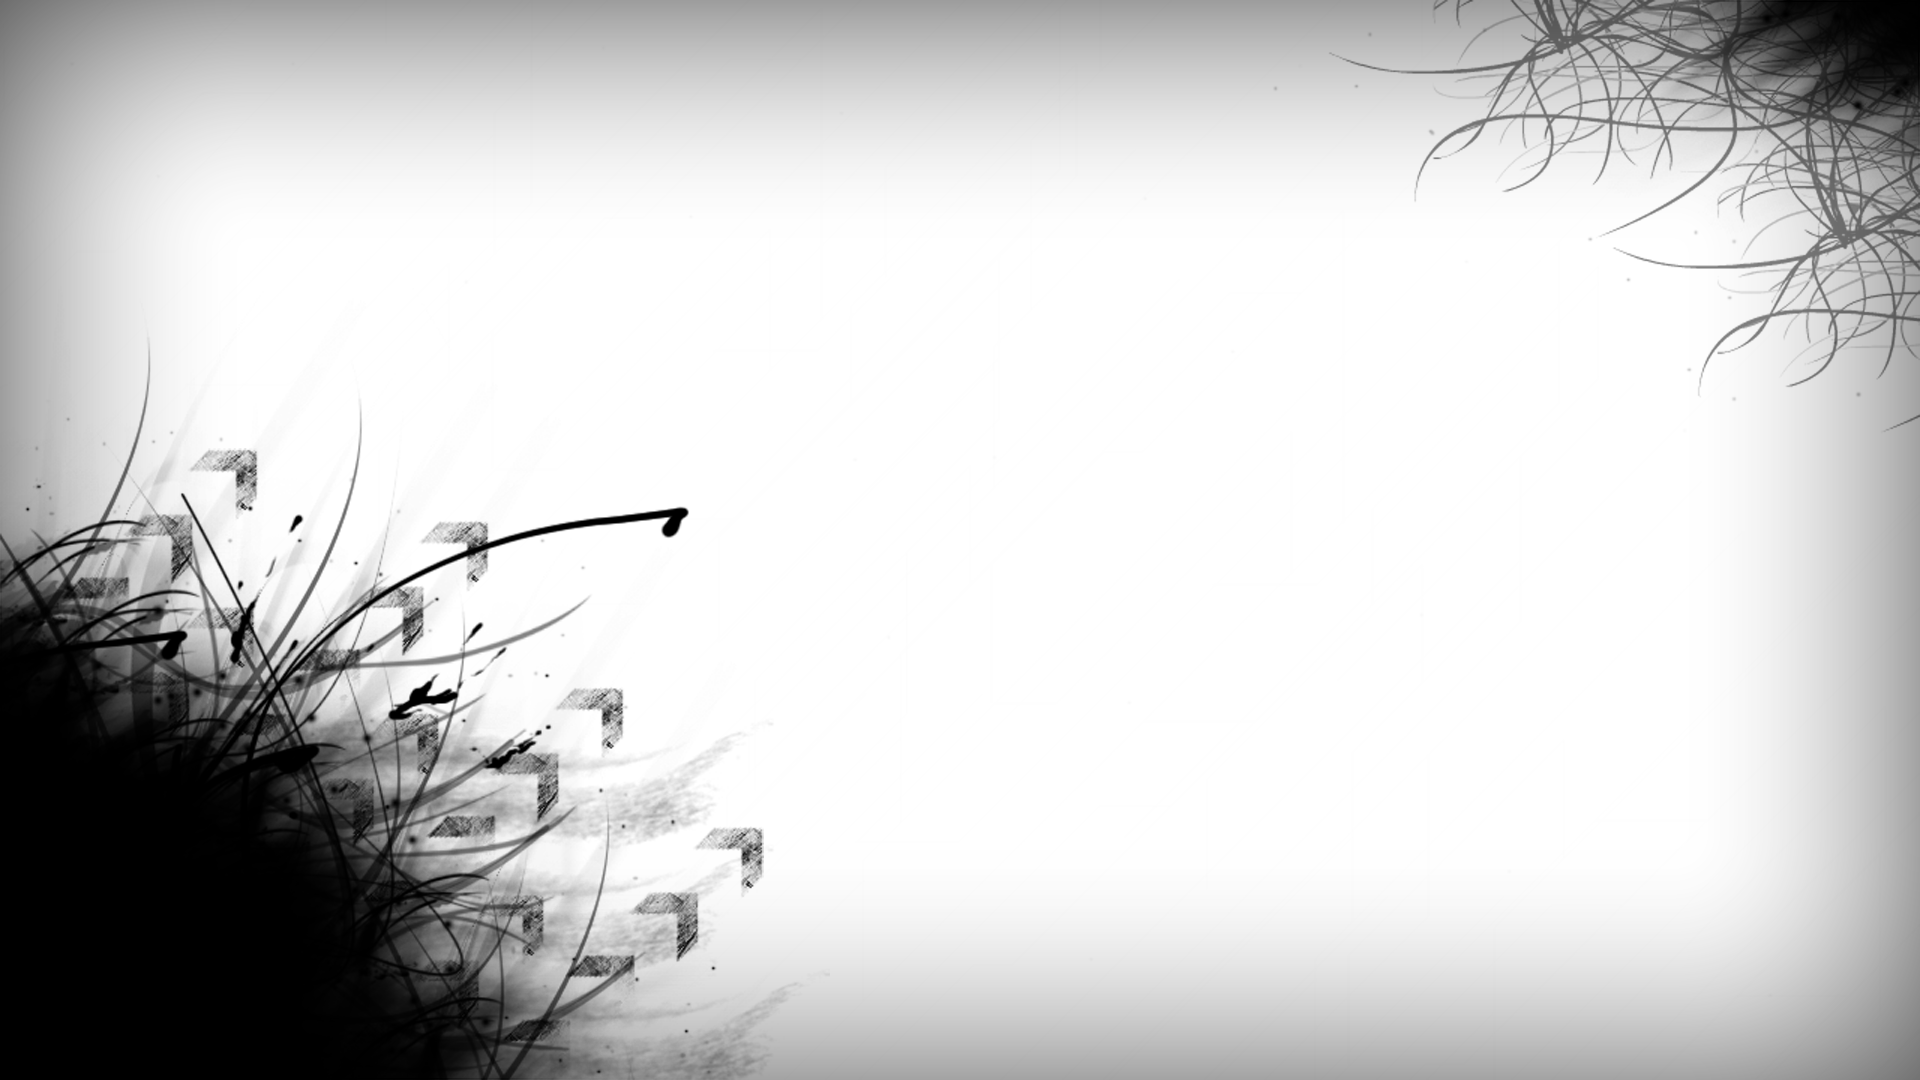 Hd black and white backgrounds pixelstalk net - Black and white hd wallpapers black background ...